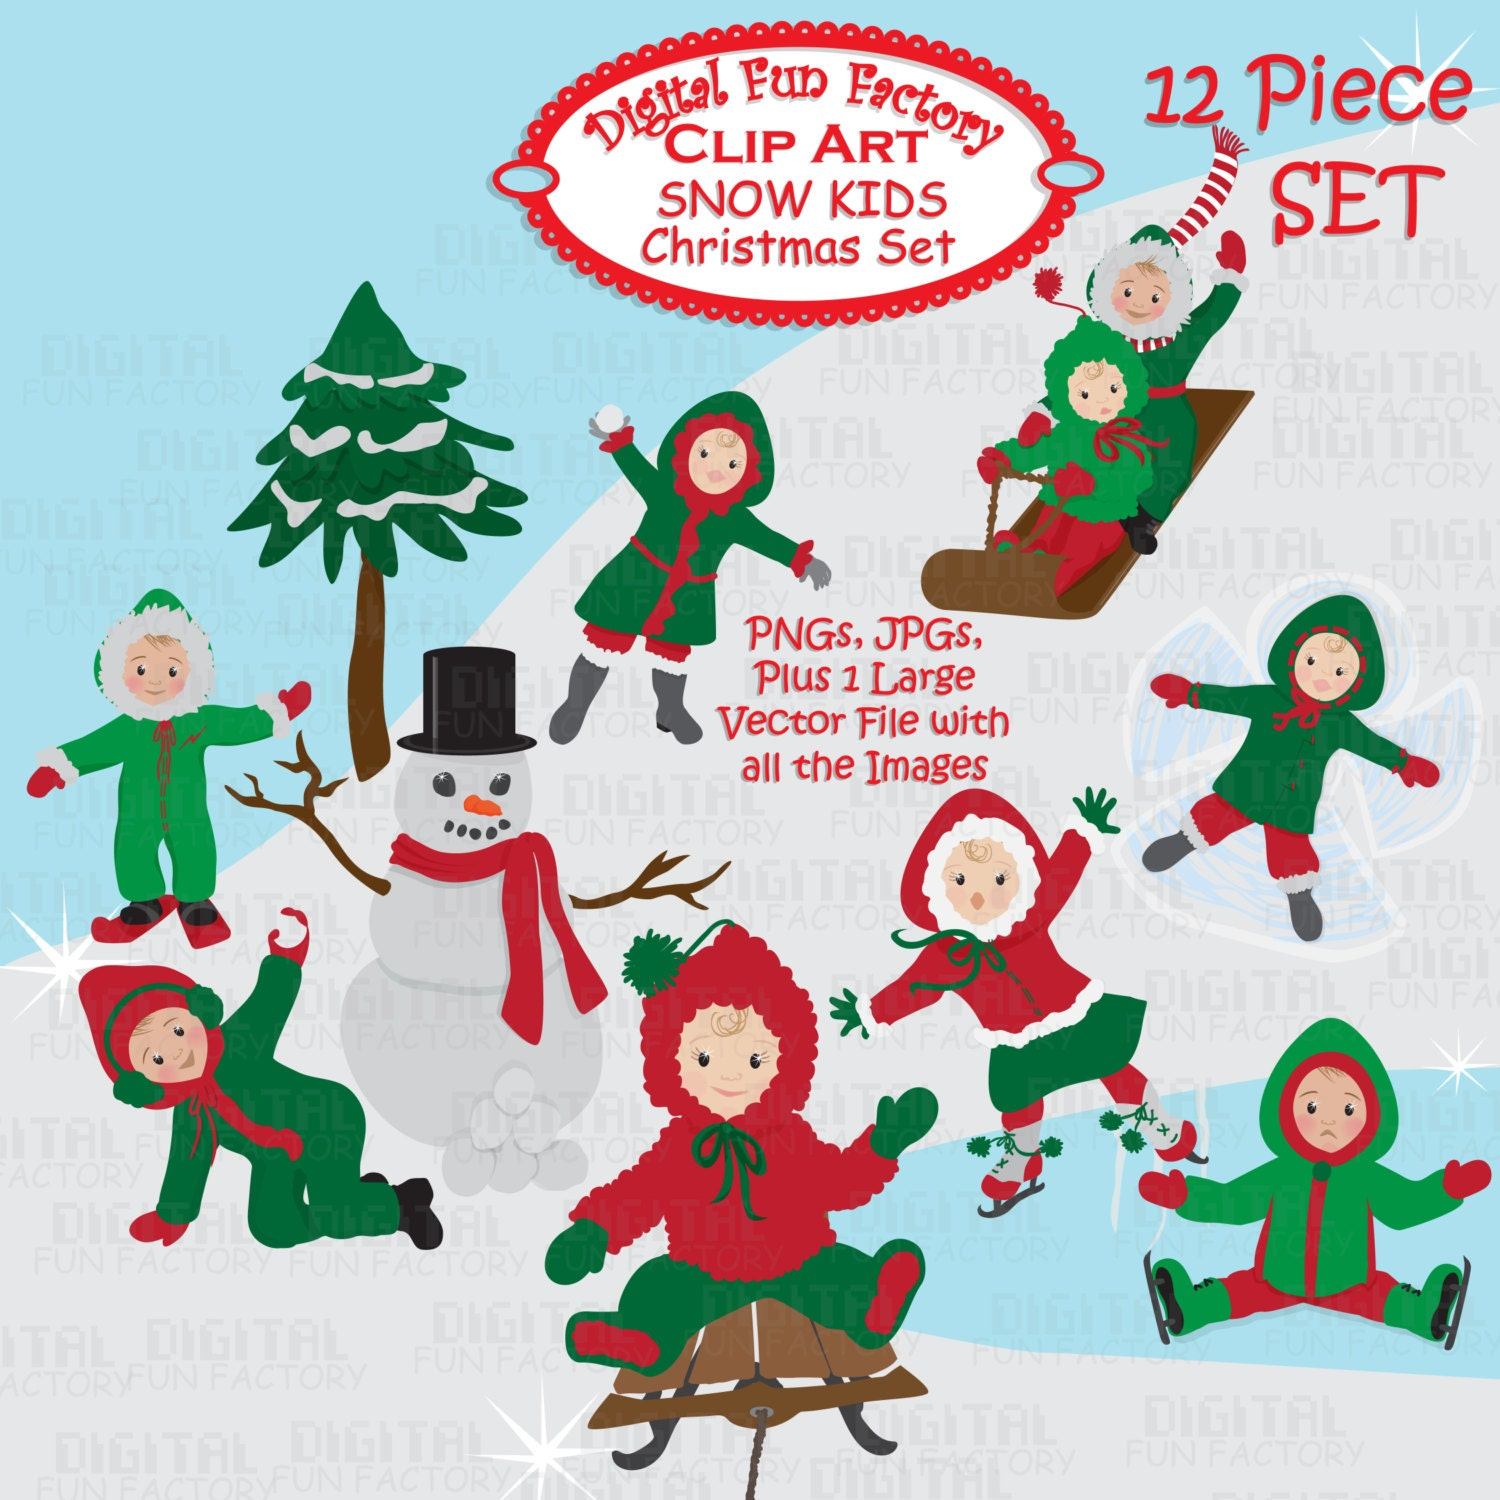 Christmas Clip Art: Winter Christmas Clip Art by DigitalFunFactory